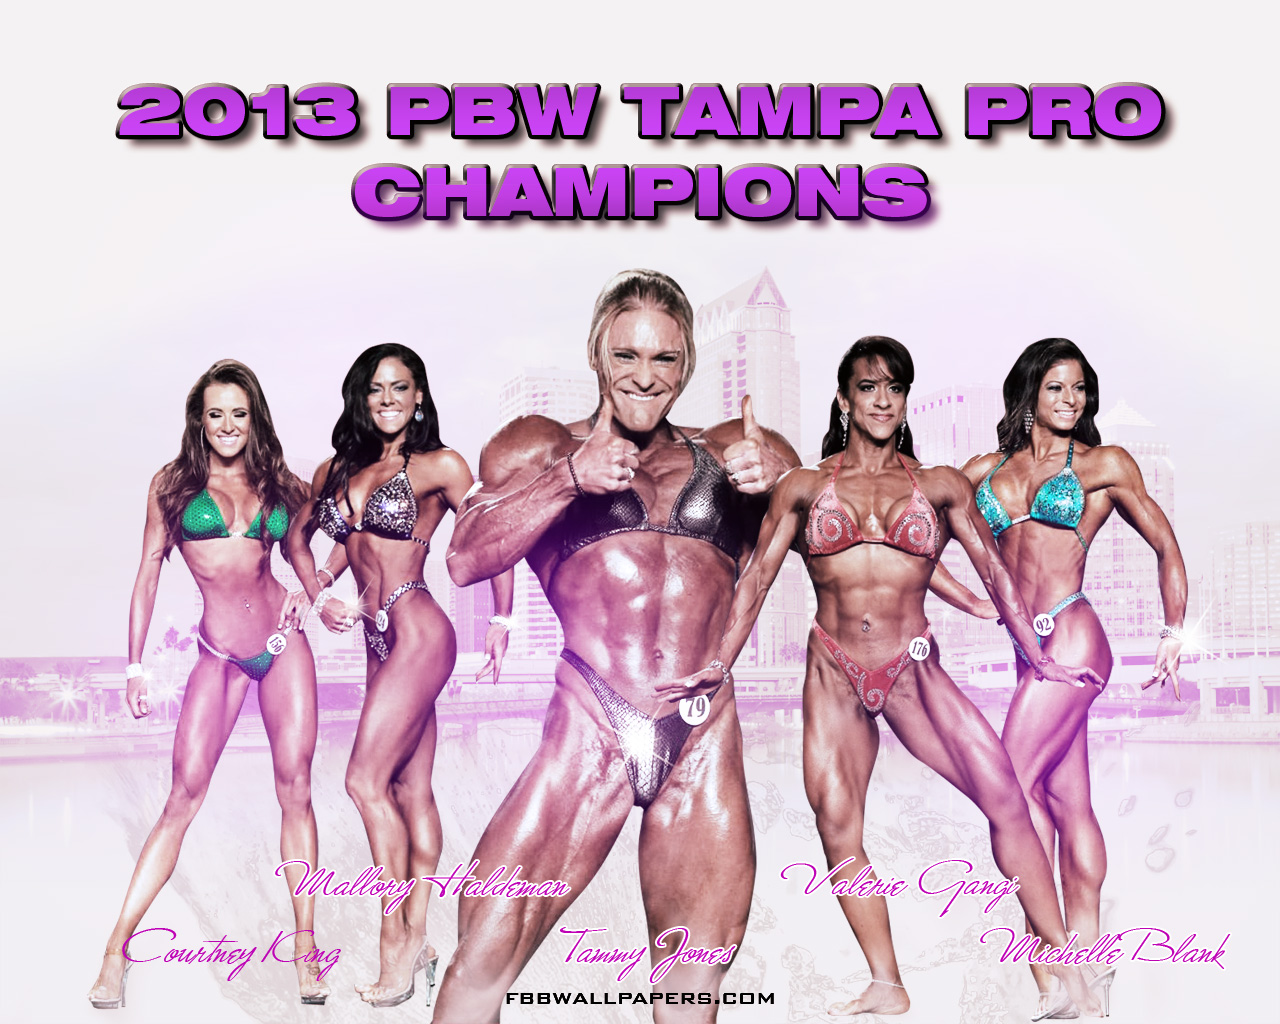 2013 PBW Tampa Pro Women Champions 1280 by 1024 Wallpaper